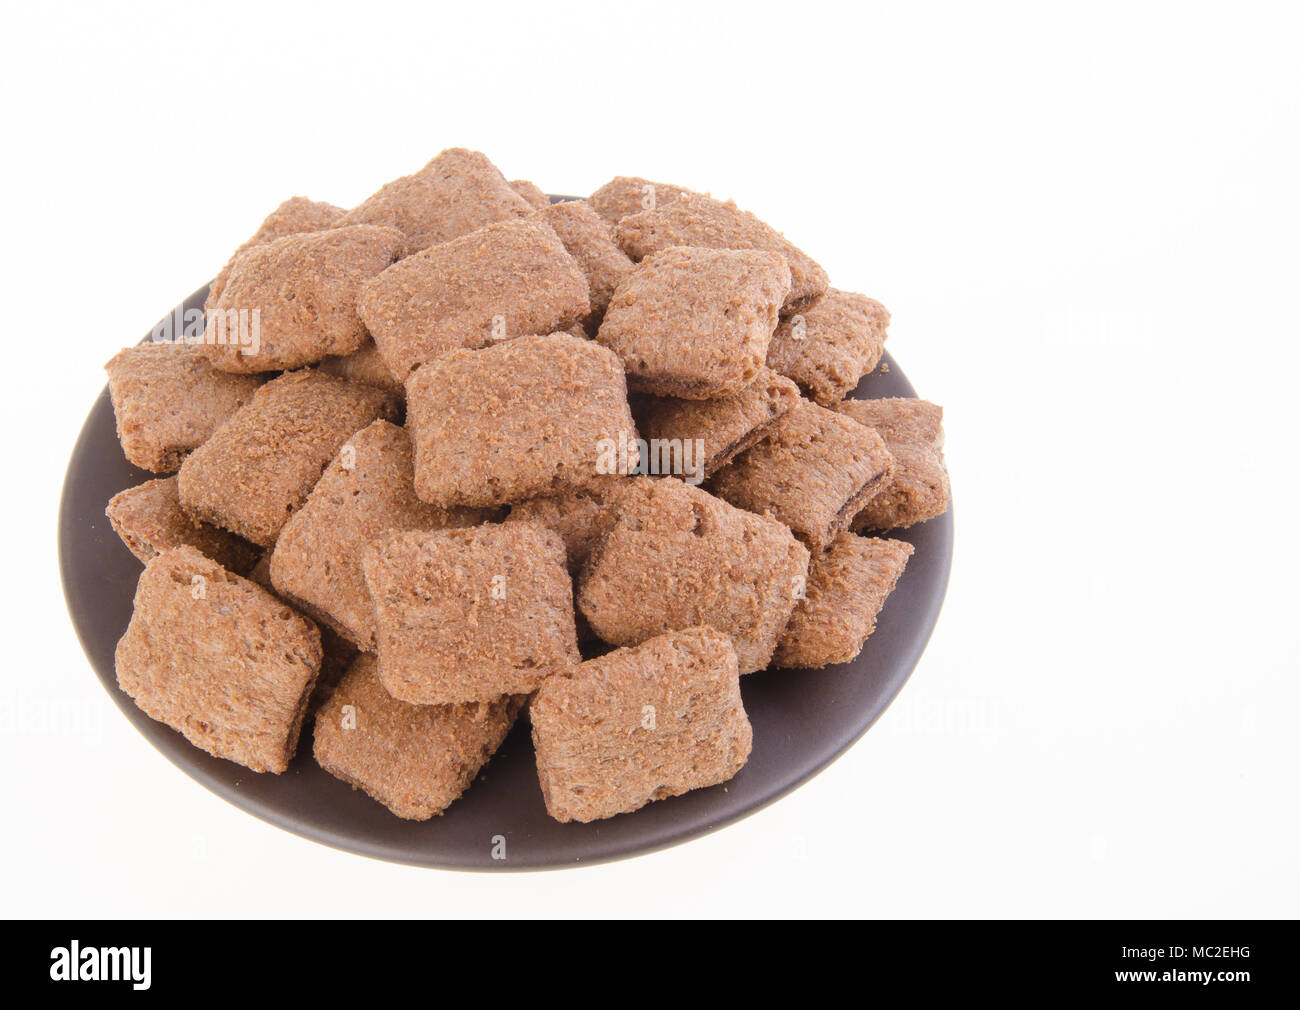 Junk food on a background - Stock Image